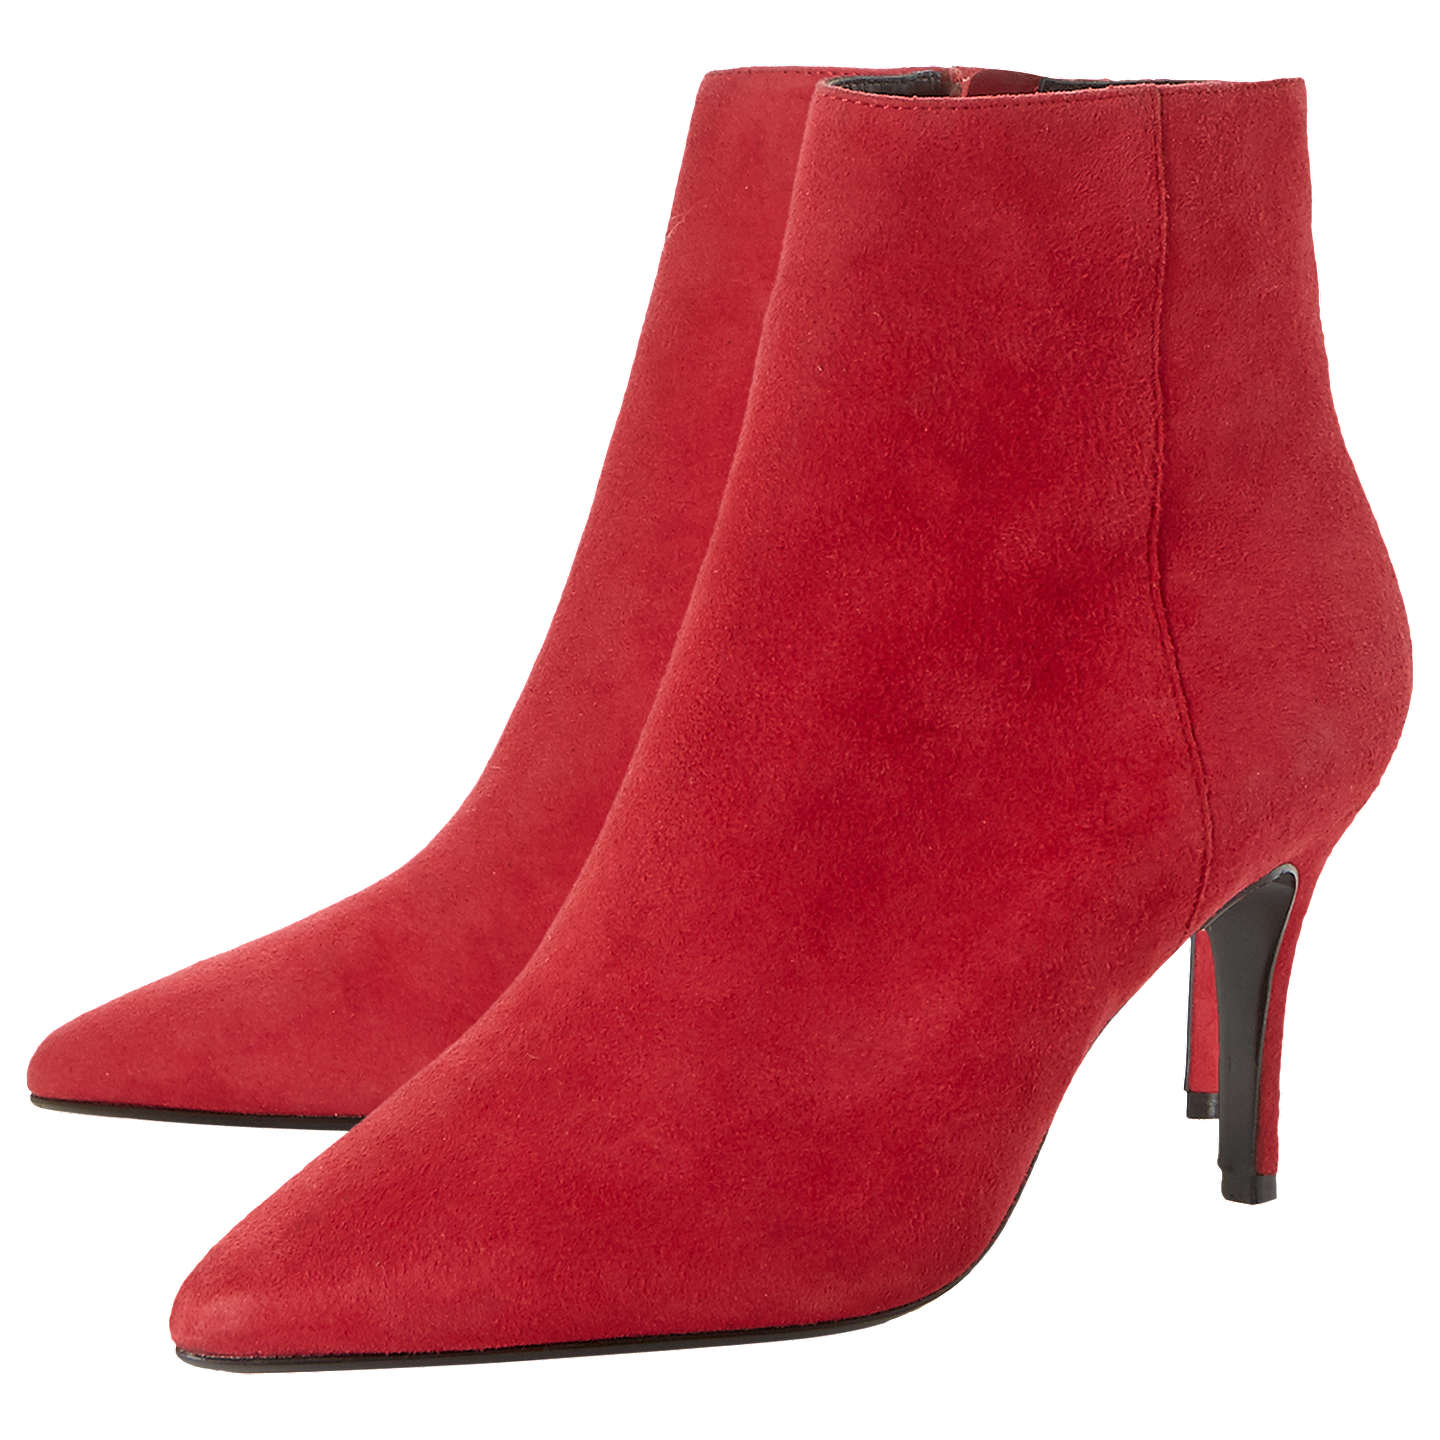 BuyDune Osha Pointed Toe Ankle Boots, Red Suede, 5 Online at johnlewis.com